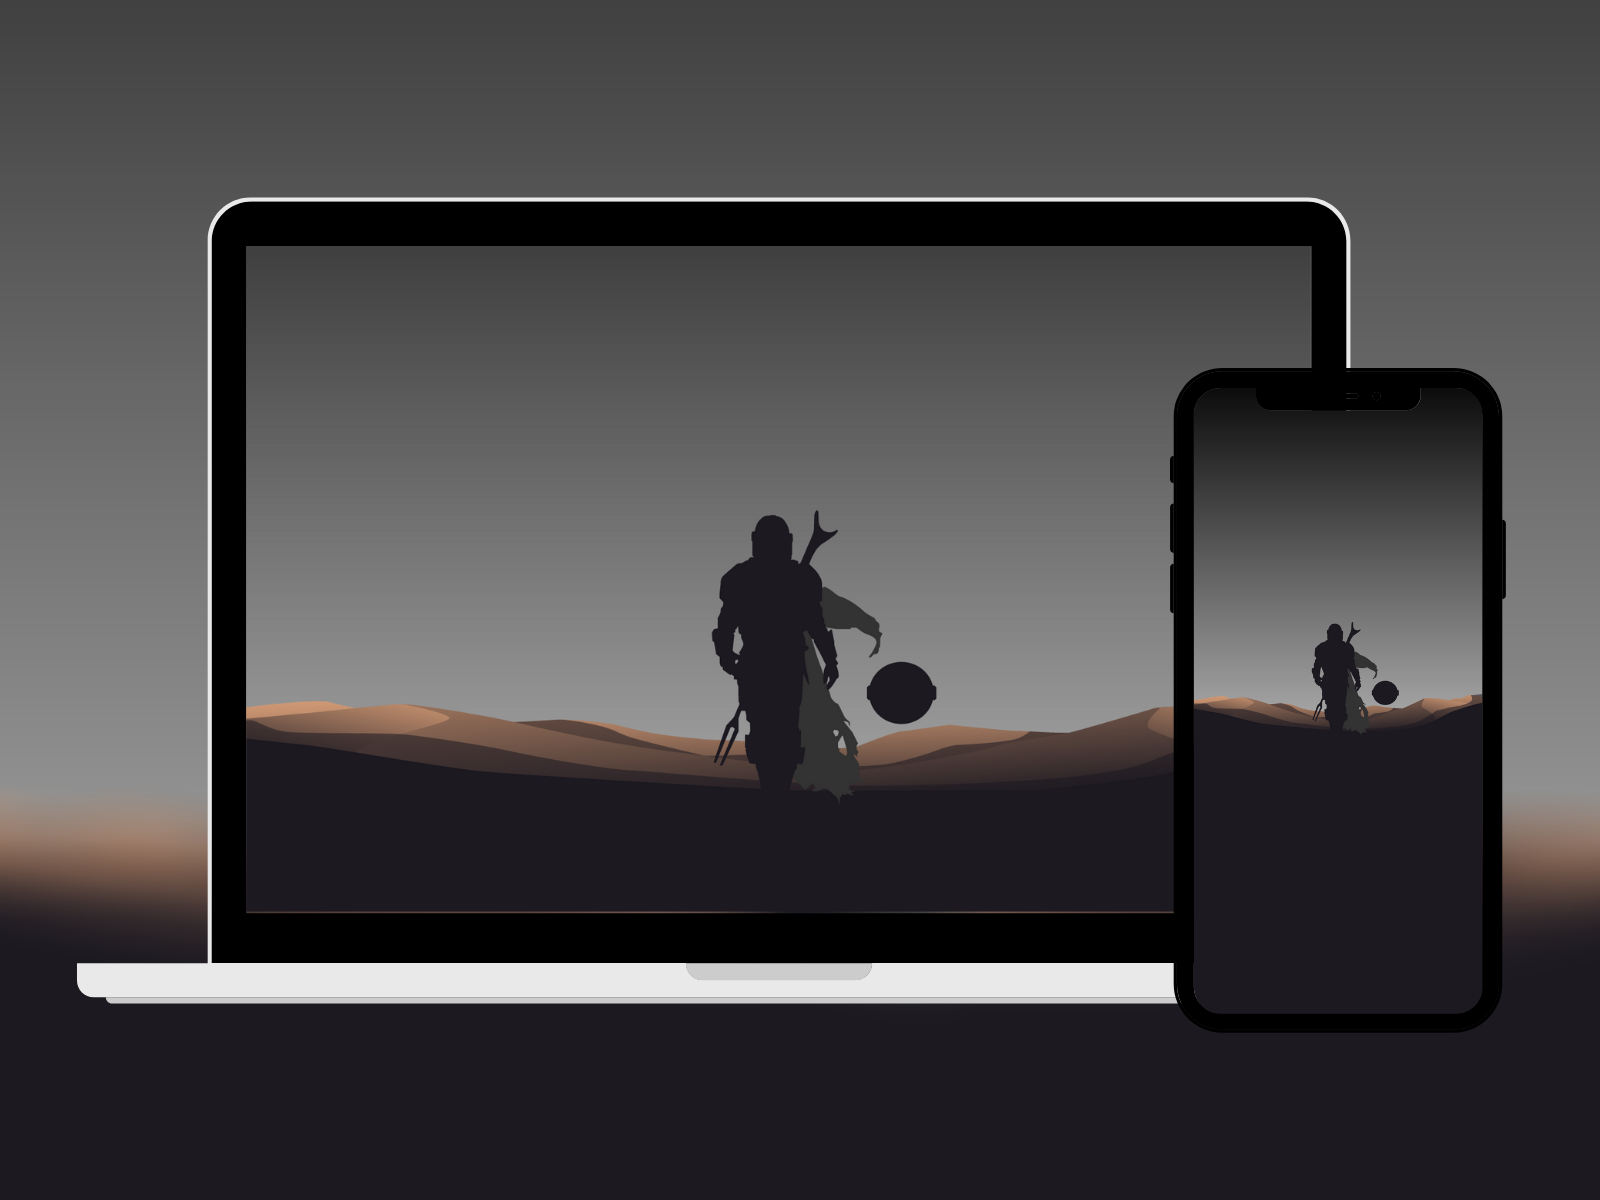 The Mandalorian Minimalist Wallpaper By Jorge Hardt On Dribbble